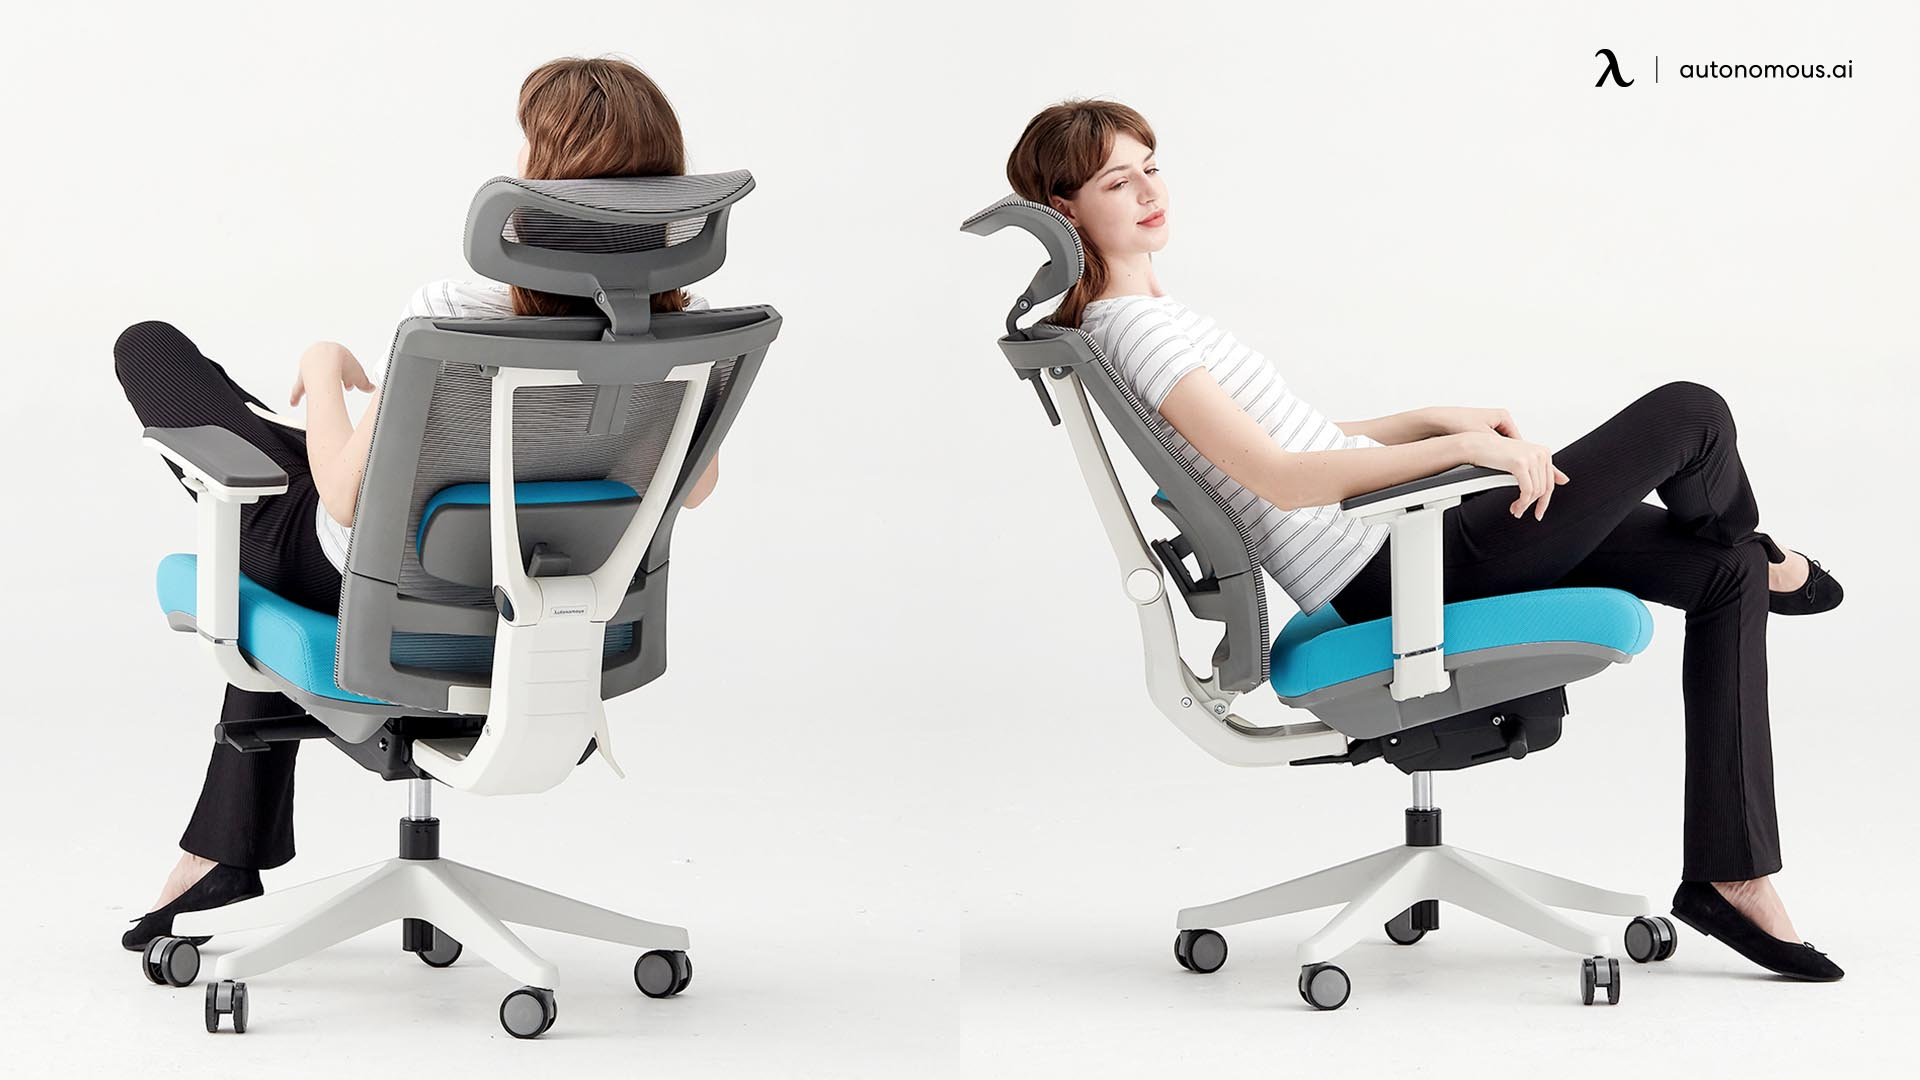 Design of the chair